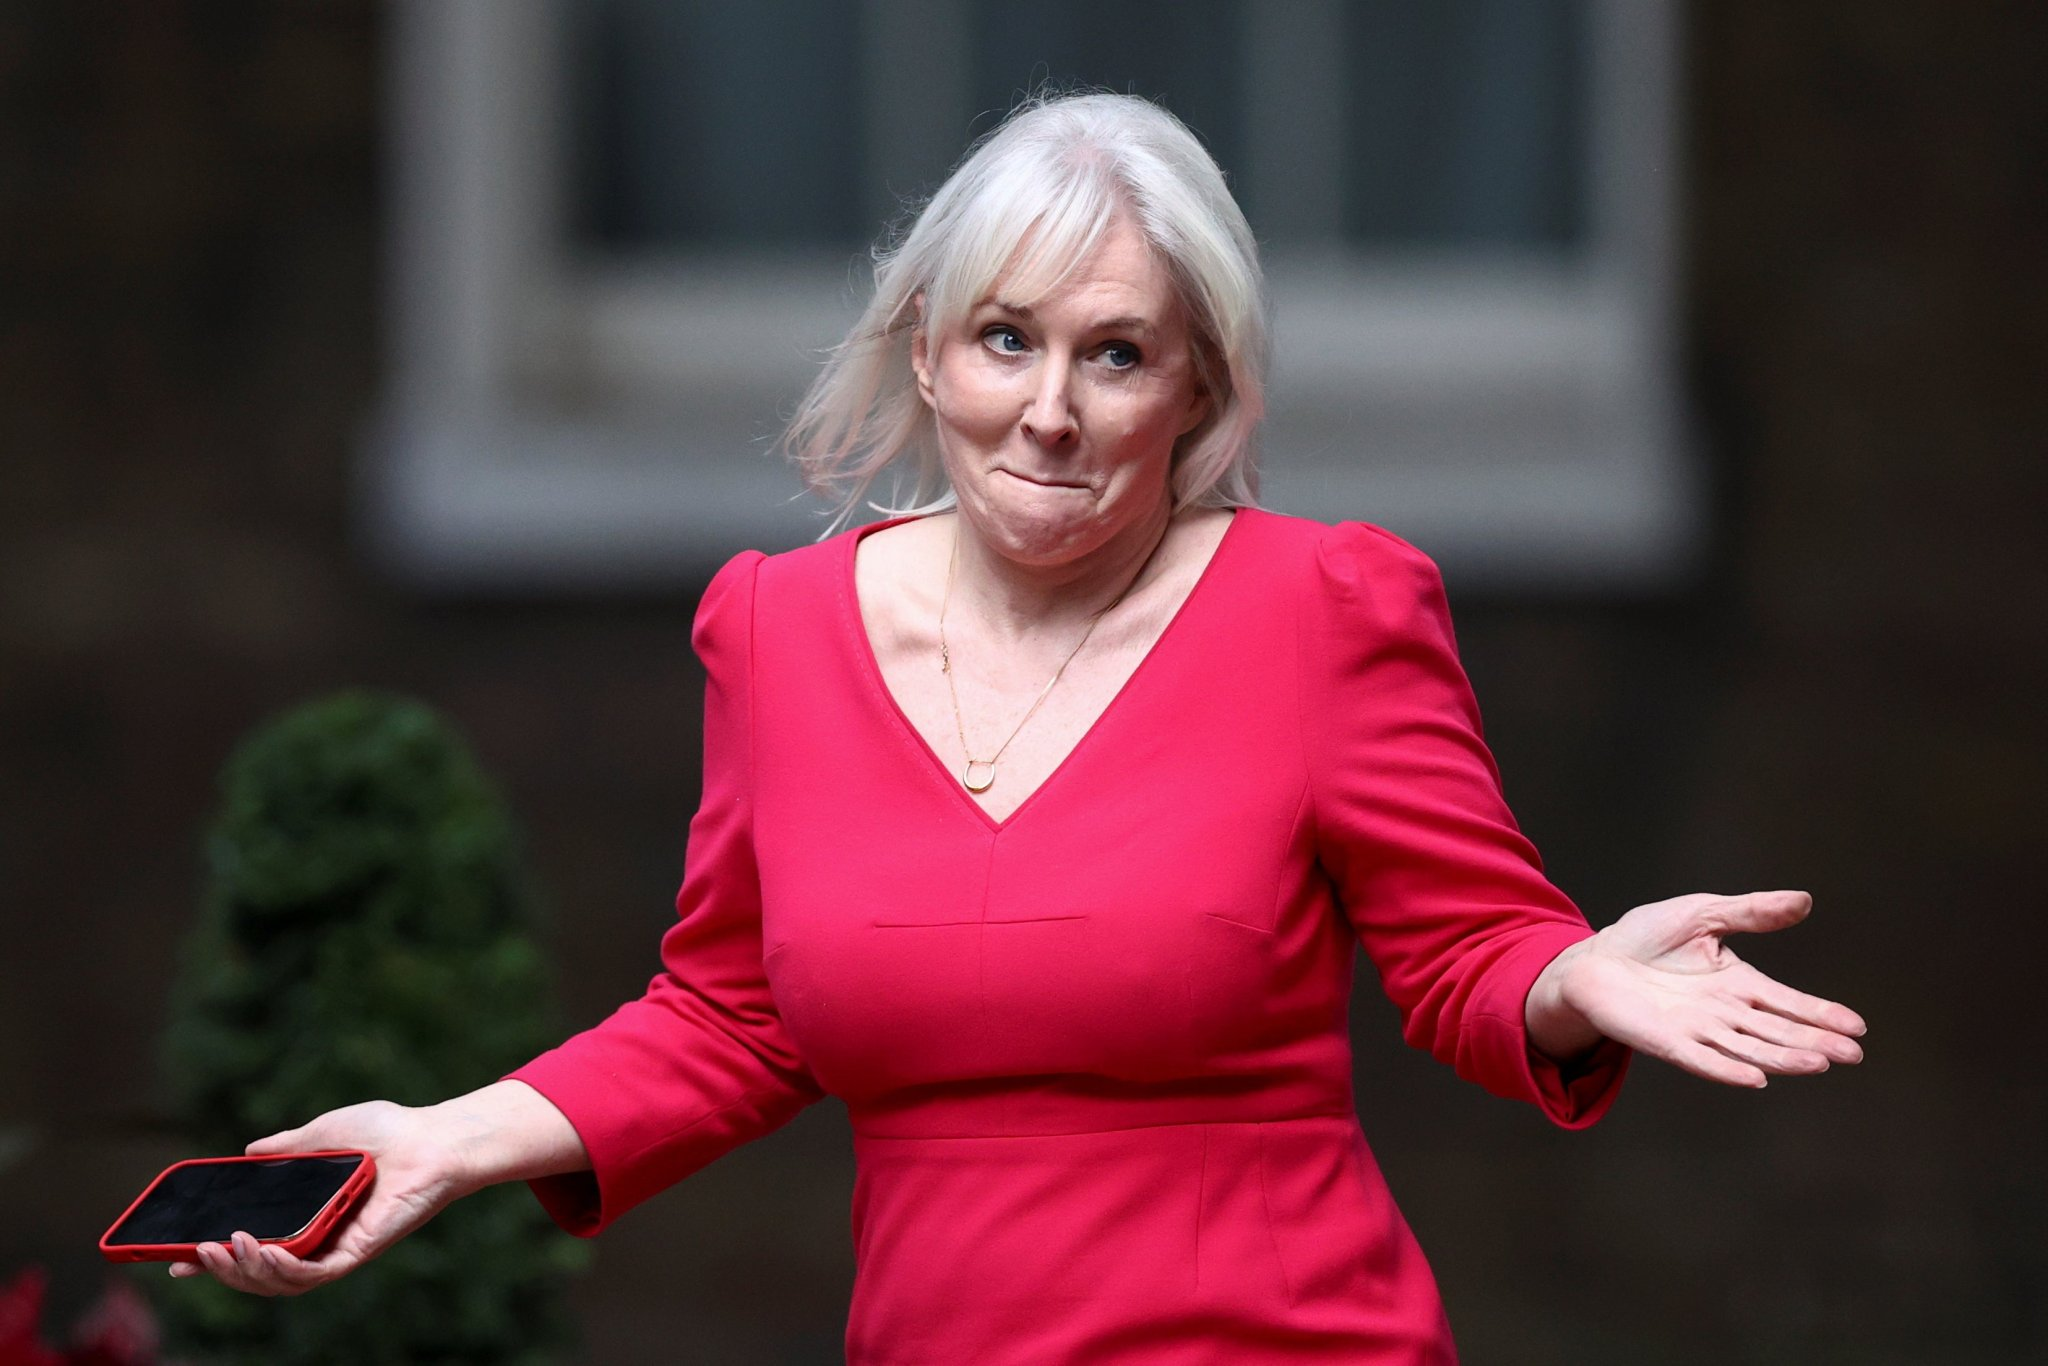 Controversial Nadine Dorries quotes resurface after she's named as culture minister